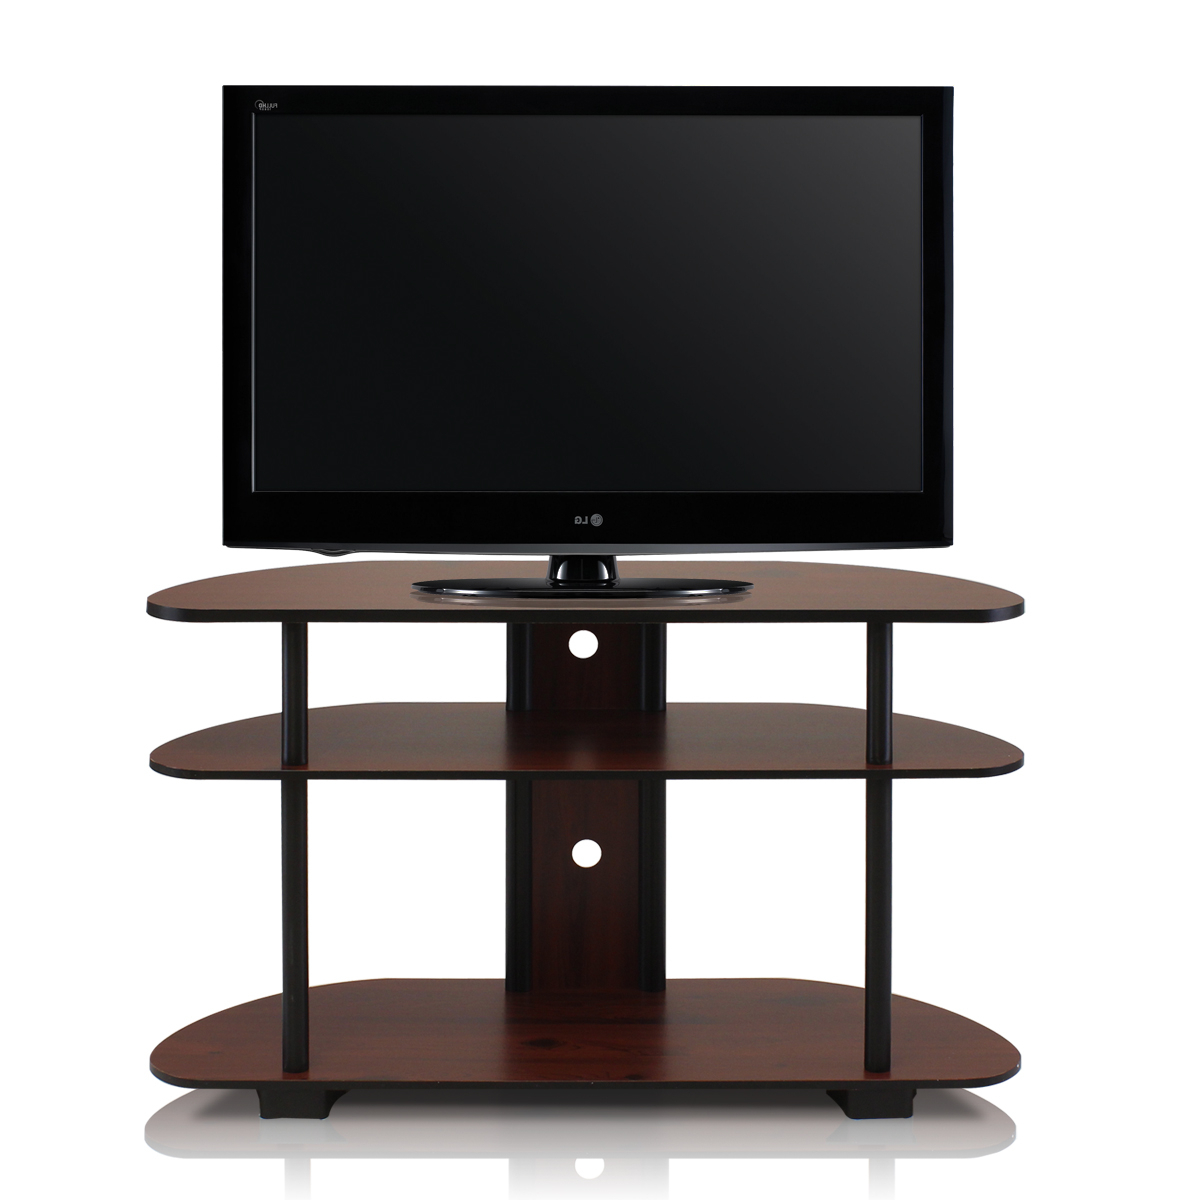 """Turn N Tube 3 Tier Tv Stand For Tvs Up To 43"""", Multiple Intended For Maubara Tv Stands For Tvs Up To 43"""" (View 12 of 20)"""